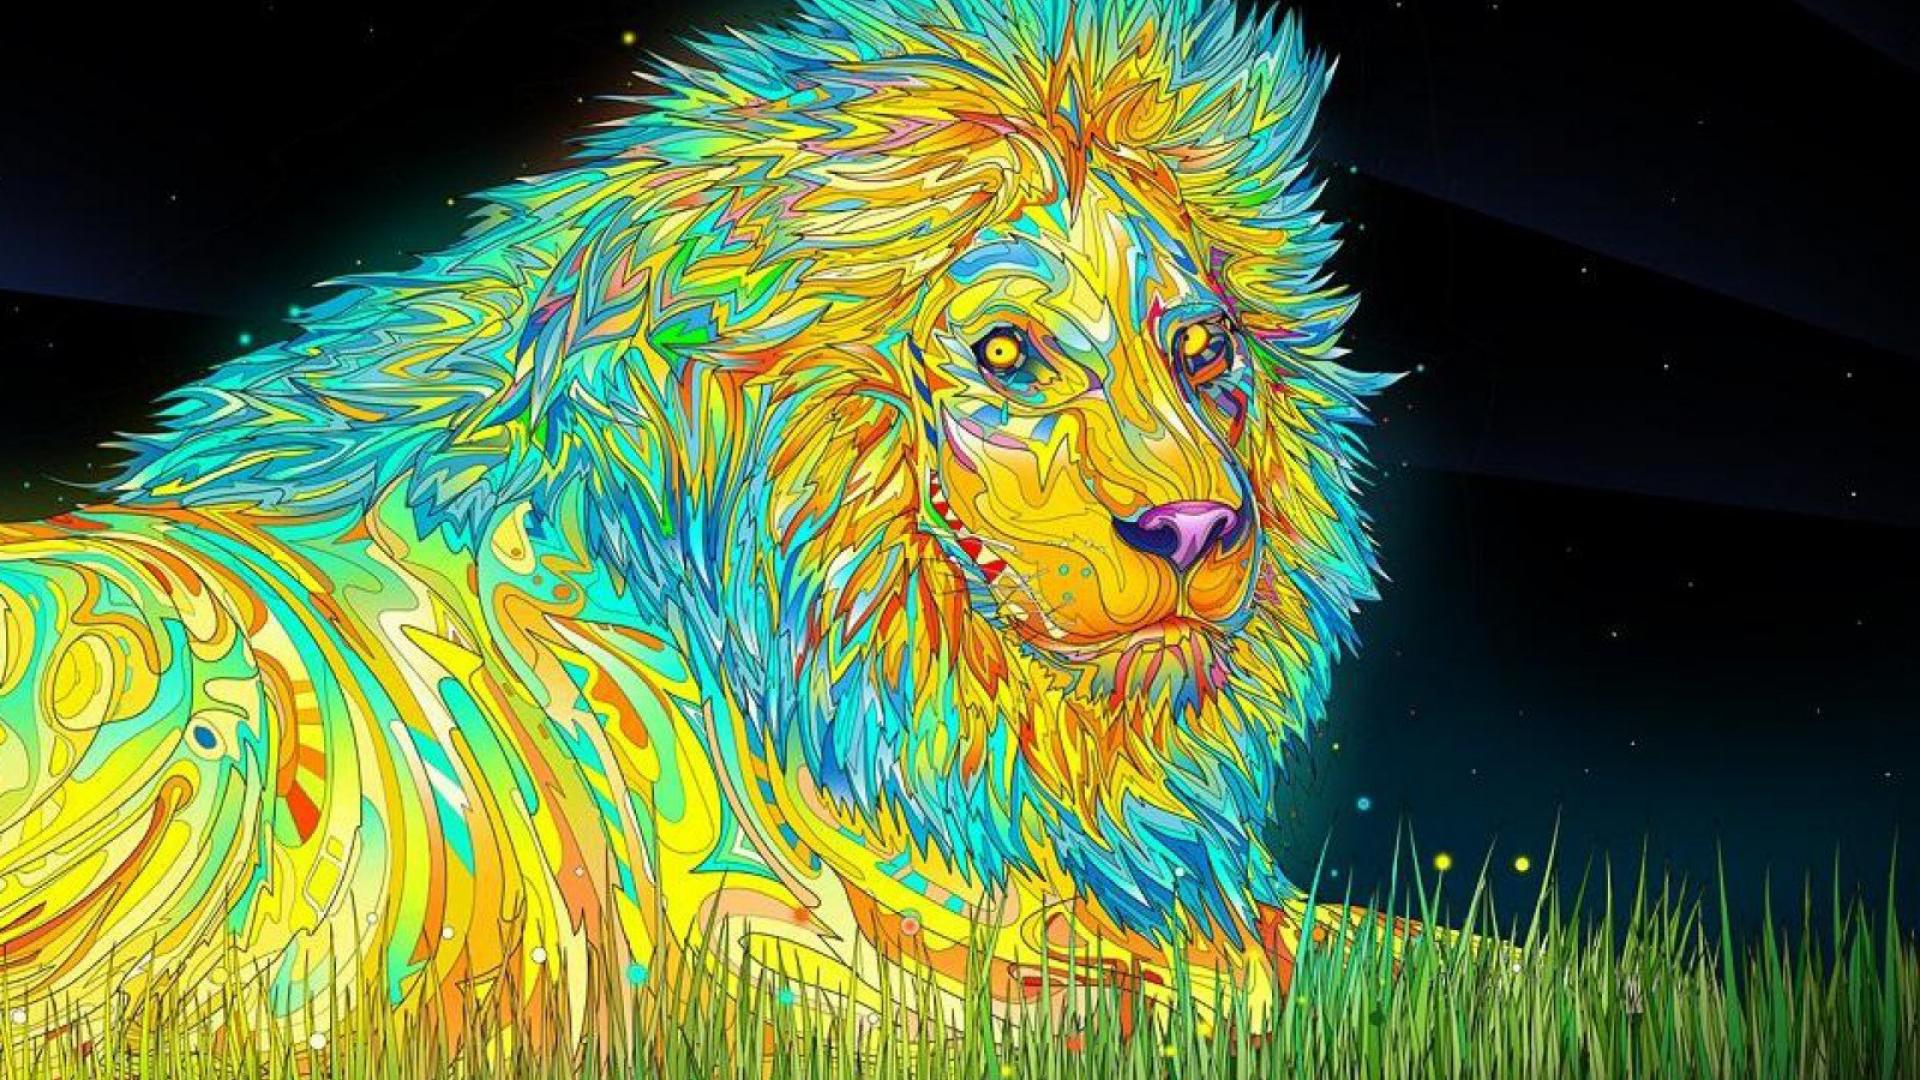 Sokilin design wallpapers trippy wallpapers hd - Trippy Backgrounds Psychadelic Backgrounds Trippy Wallpapers Trippy